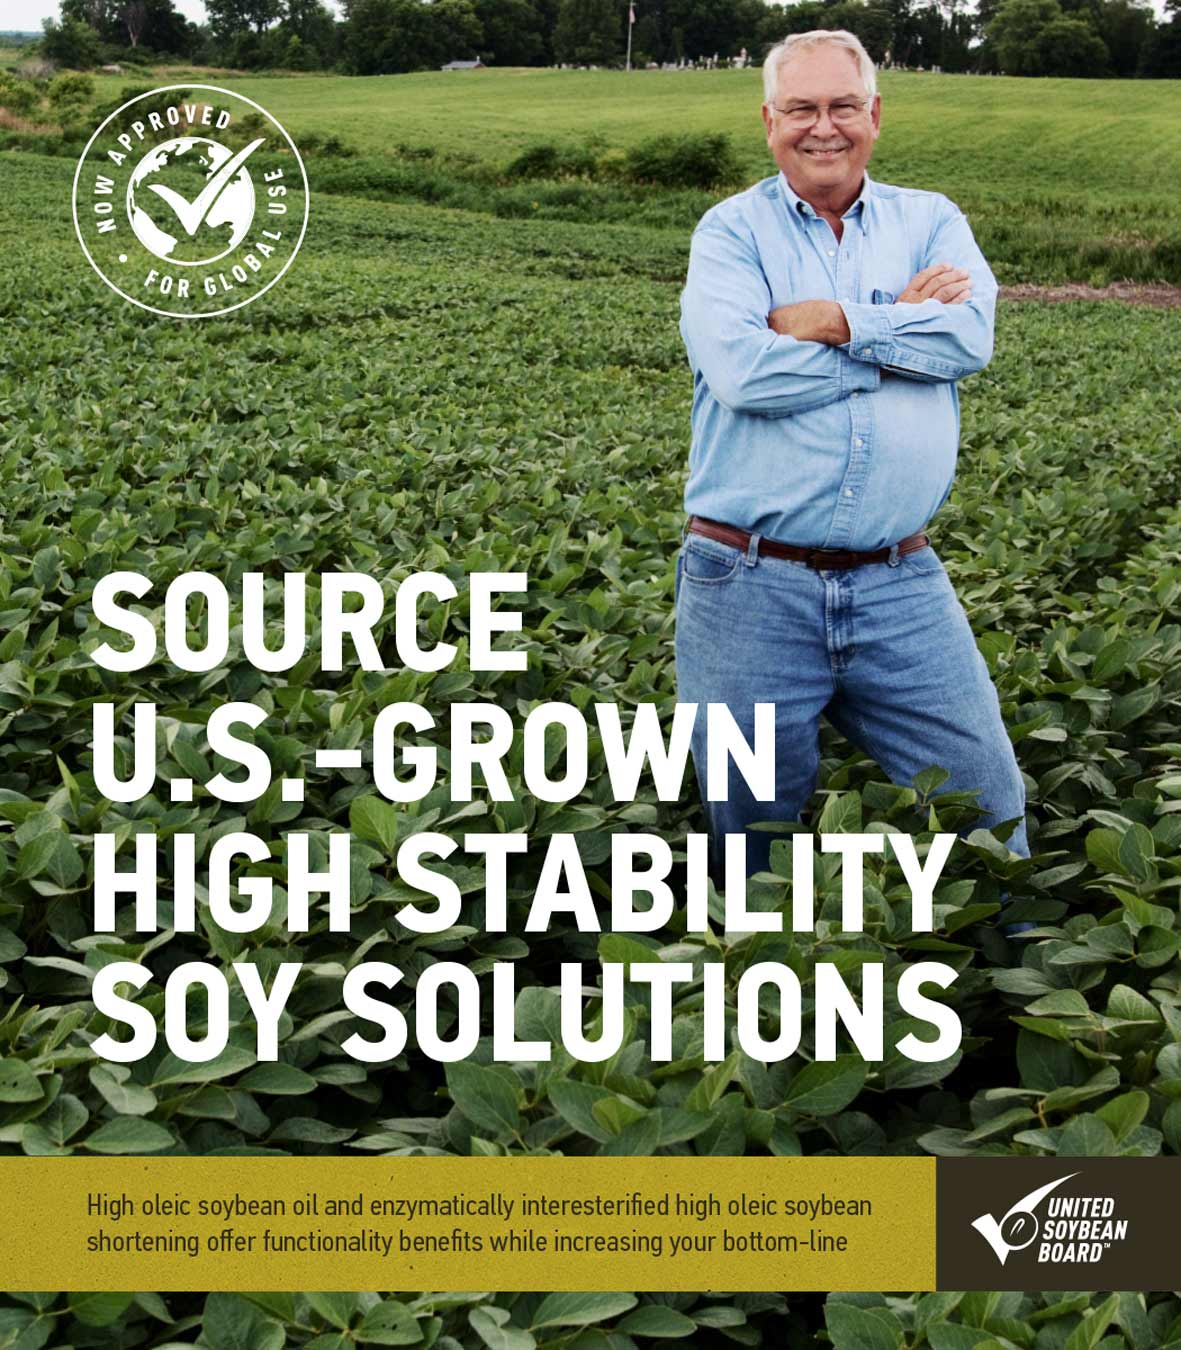 Source U.S.-grown High Oleic Soybean Oil & Shortening